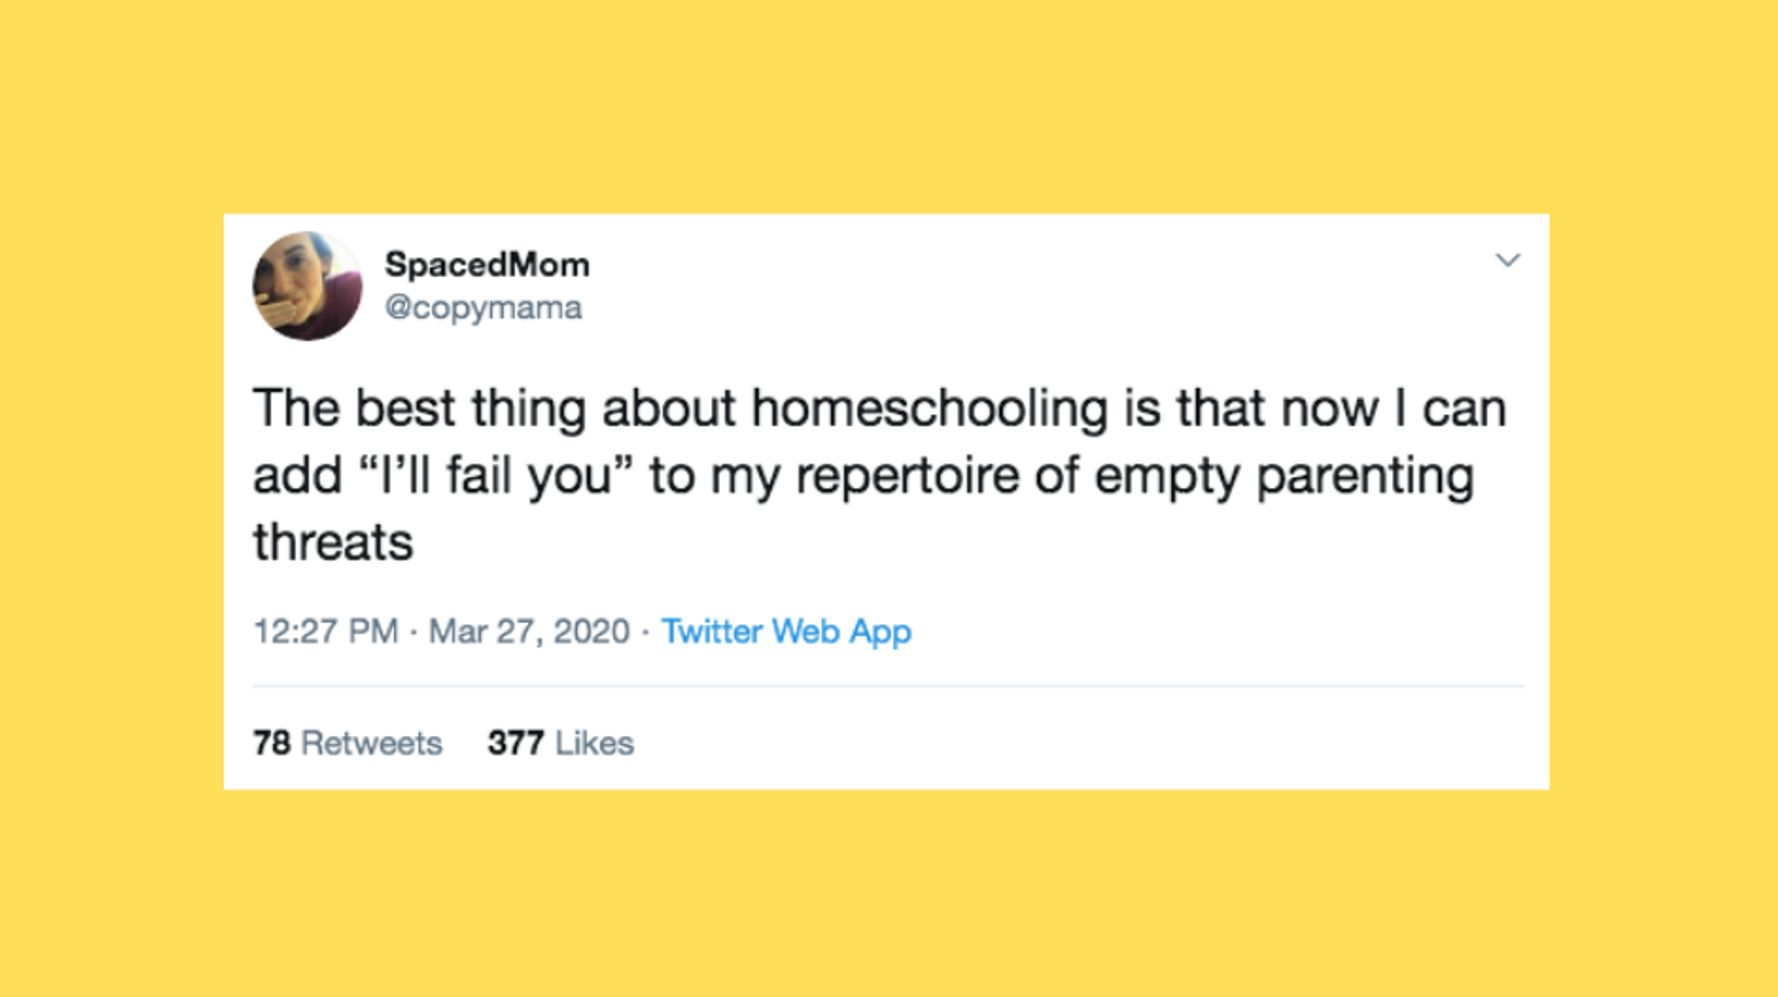 40 Tweets From Parents About Homeschooling Amid Coronavirus